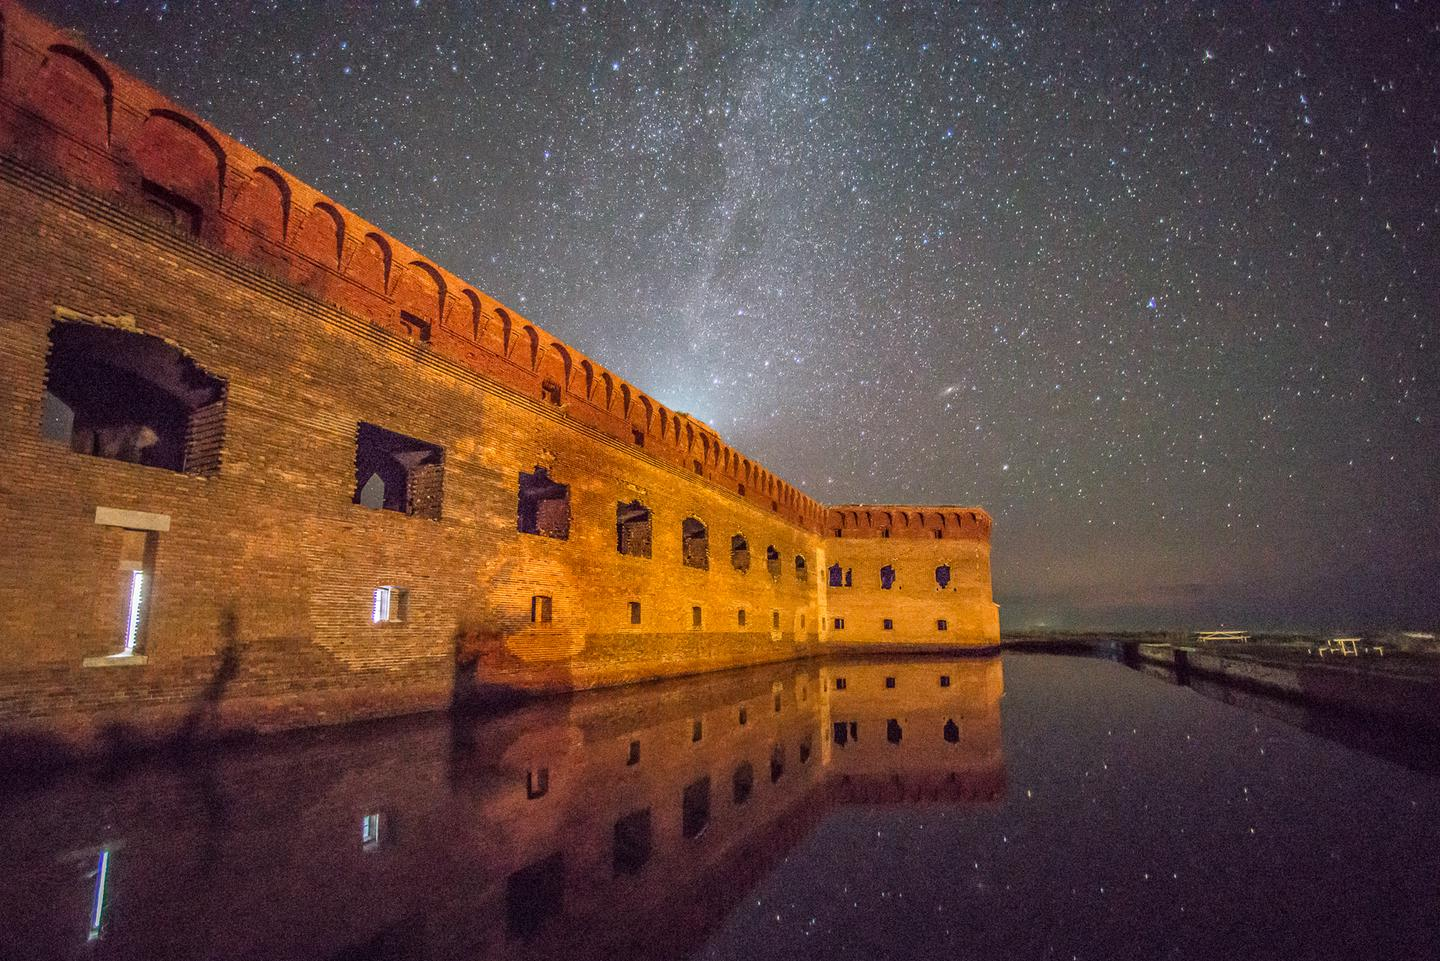 Night sky at the Dry TortugasThe Dry Tortugas is so remote that night sky viewing is possible.